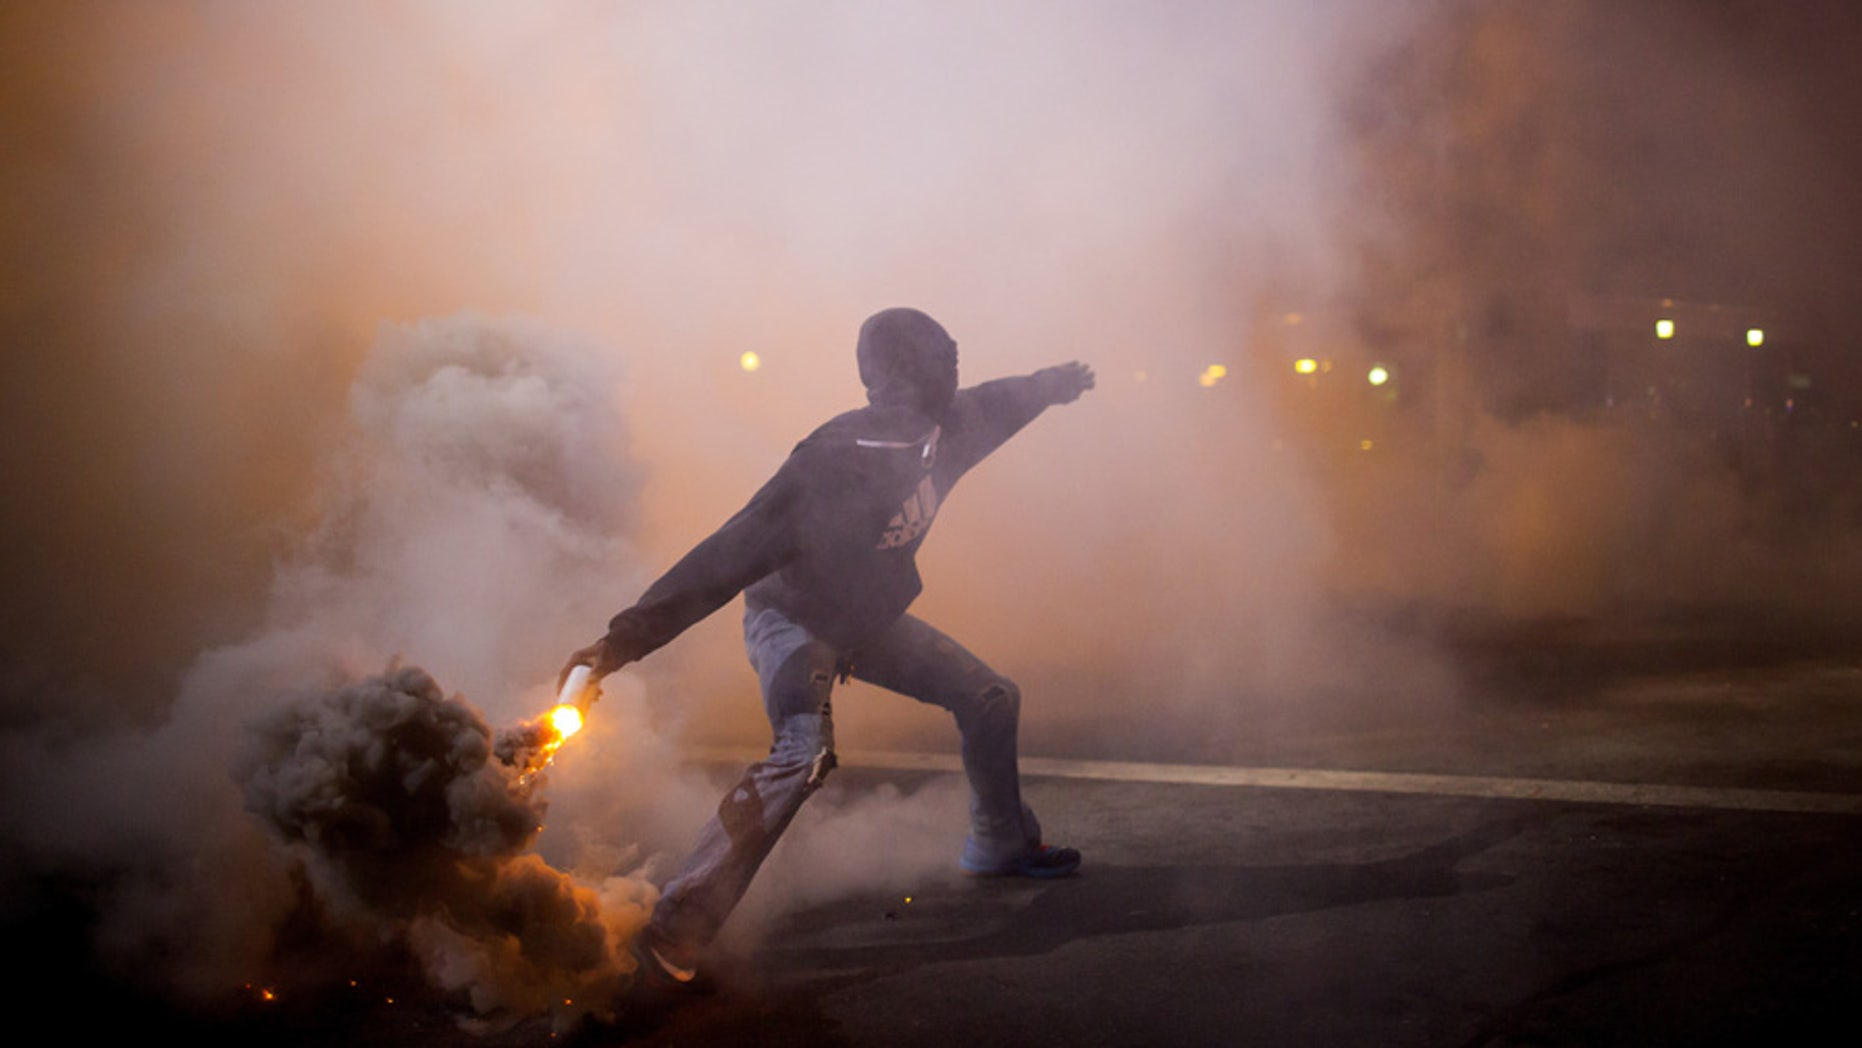 A protester throws a gas canister back at police during clashes at North Ave and Pennsylvania Ave in Baltimore, Maryland April 28, 2015. Baltimore erupted in violence on Monday as hundreds of rioters looted stores, burned buildings and at least 15 police officers were injured following the funeral of Freddie Gray, a 25-year-old black man who died after suffering a spinal injury in police custody. The riots broke out blocks from where the funeral of Gray took place and spread through much of west Baltimore. REUTERS/Eric Thayer - GF10000076849